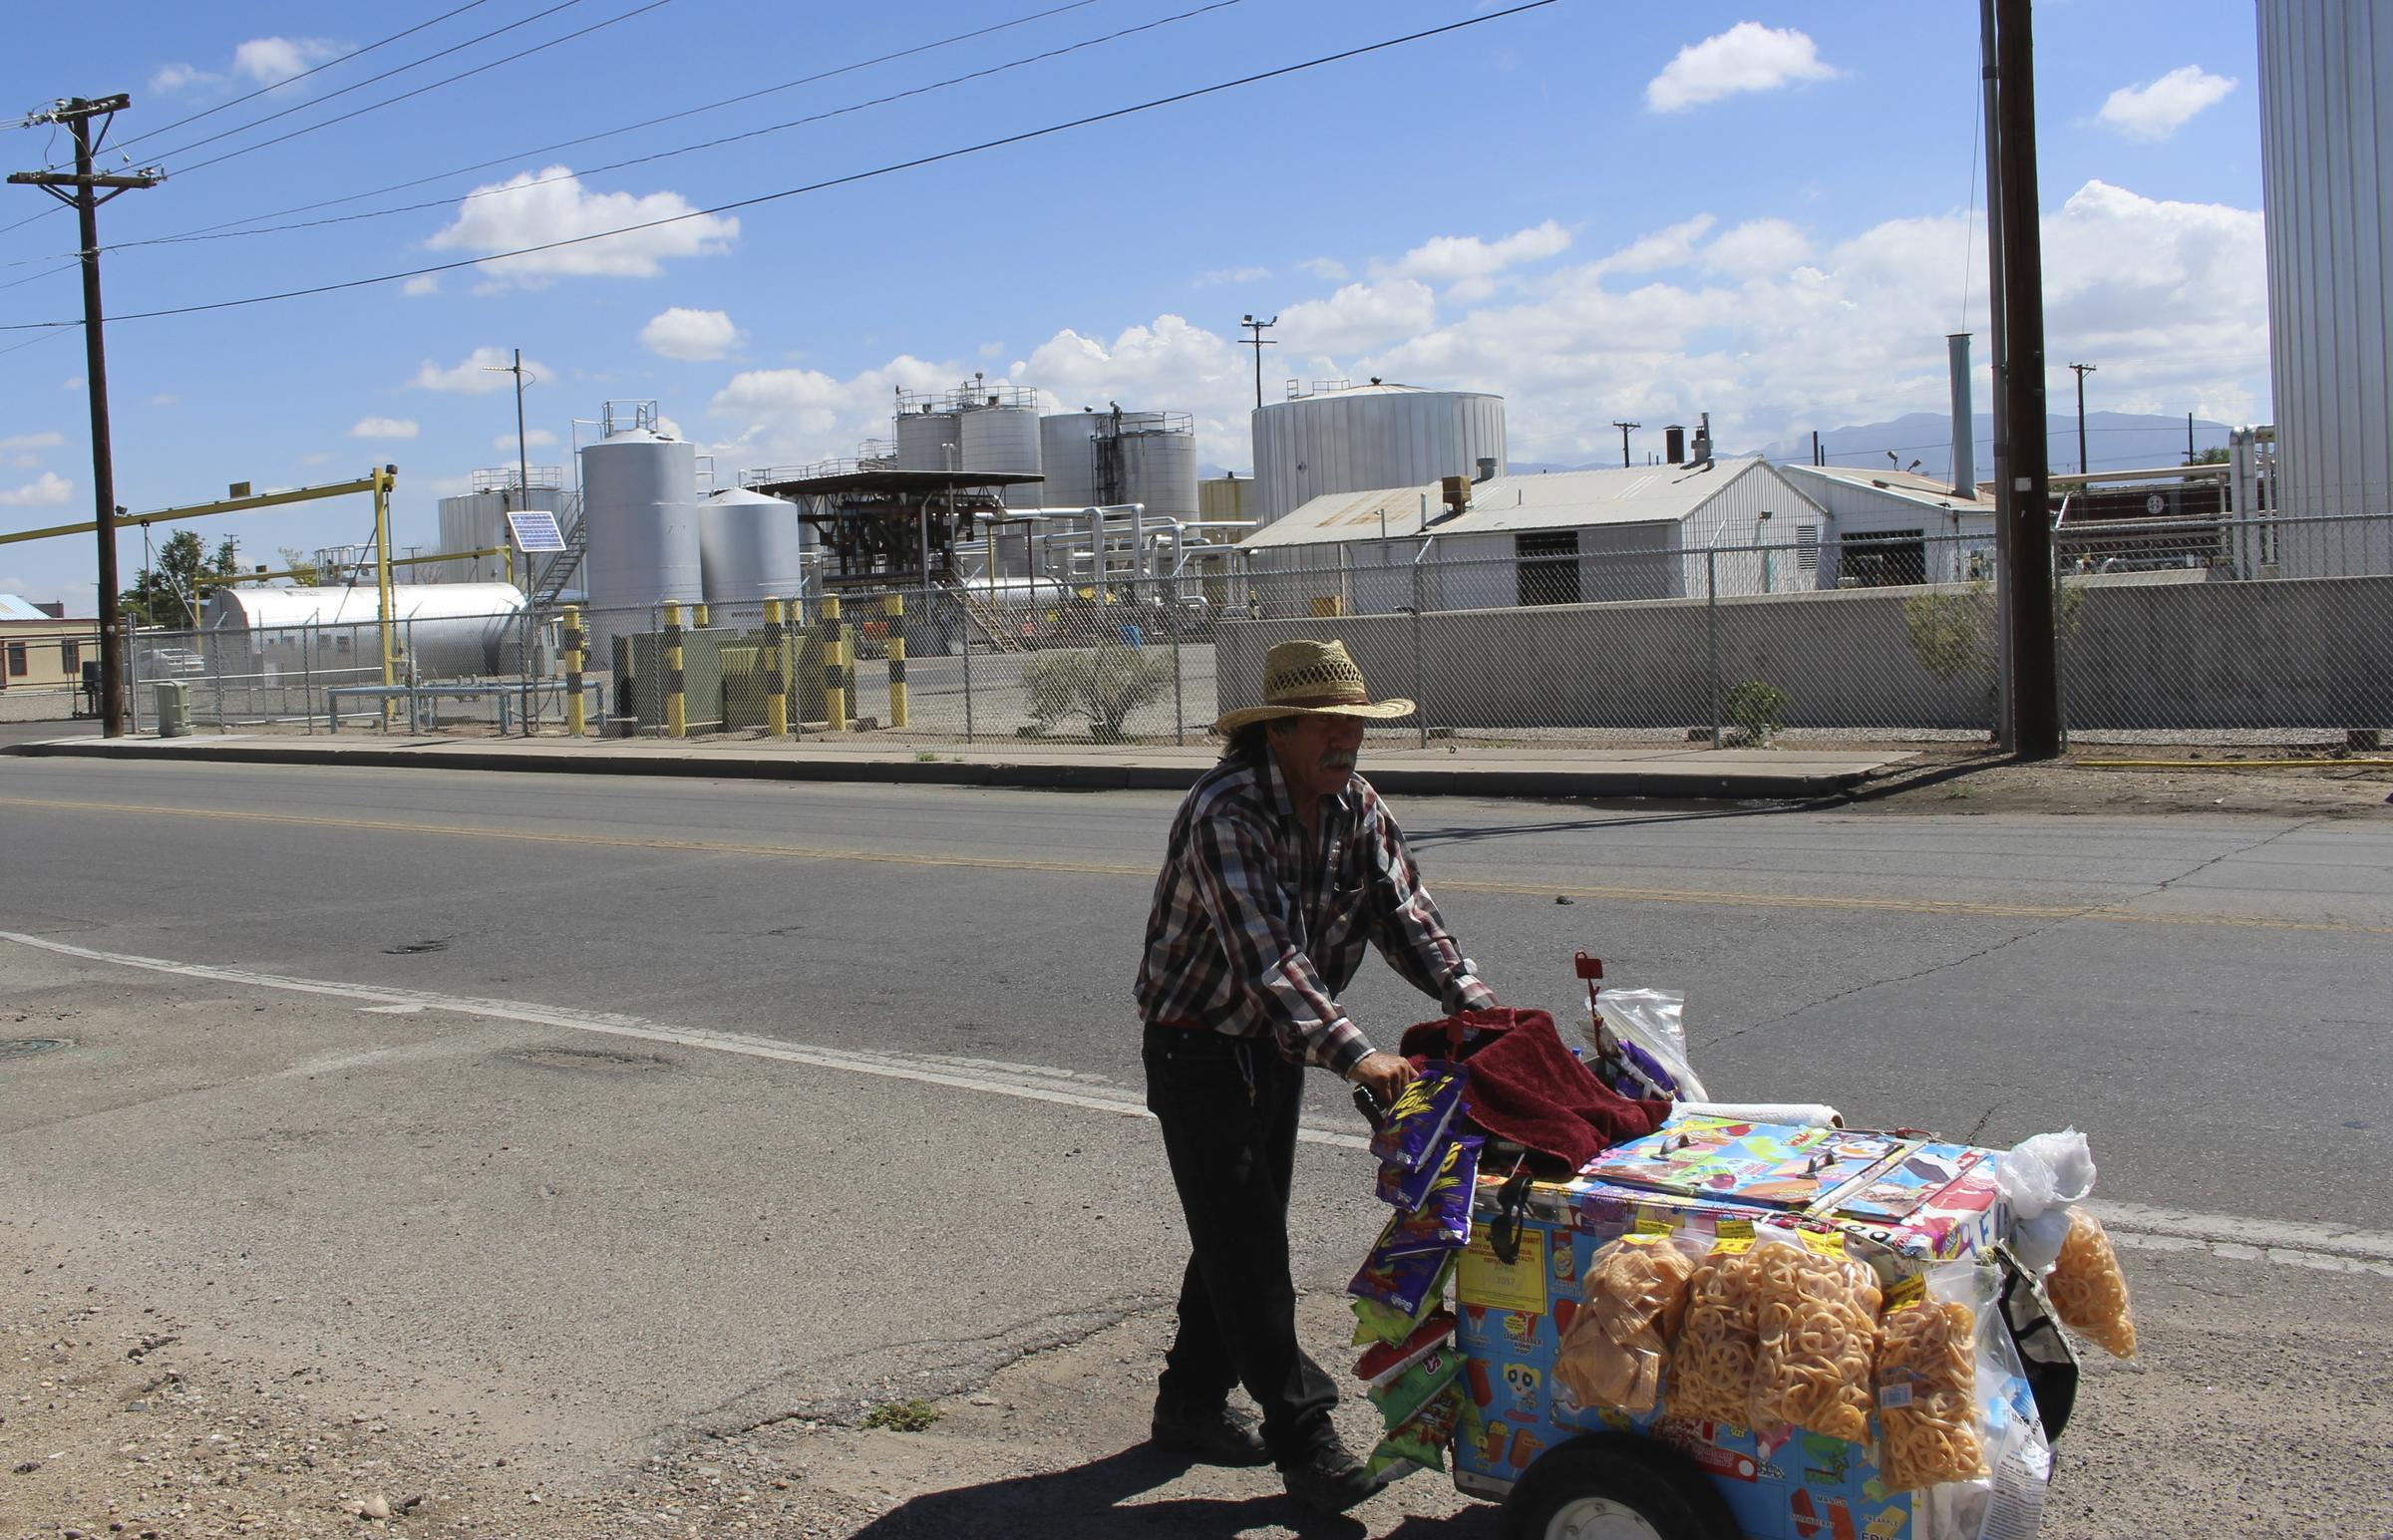 A vendor pushes his cart past the Western Refining asphalt plant on Second St SW in Albuquerque. Ed Williams